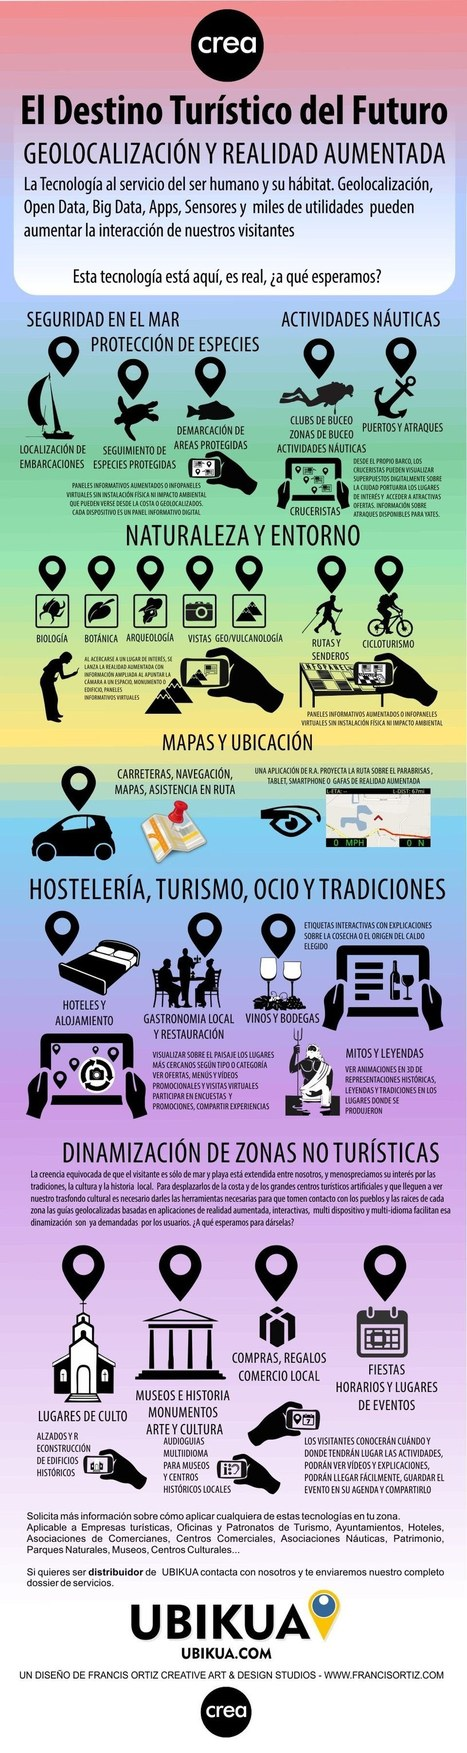 Geolocalización y realidad aumentada en destino turístico | Estrategias de marketing | Scoop.it